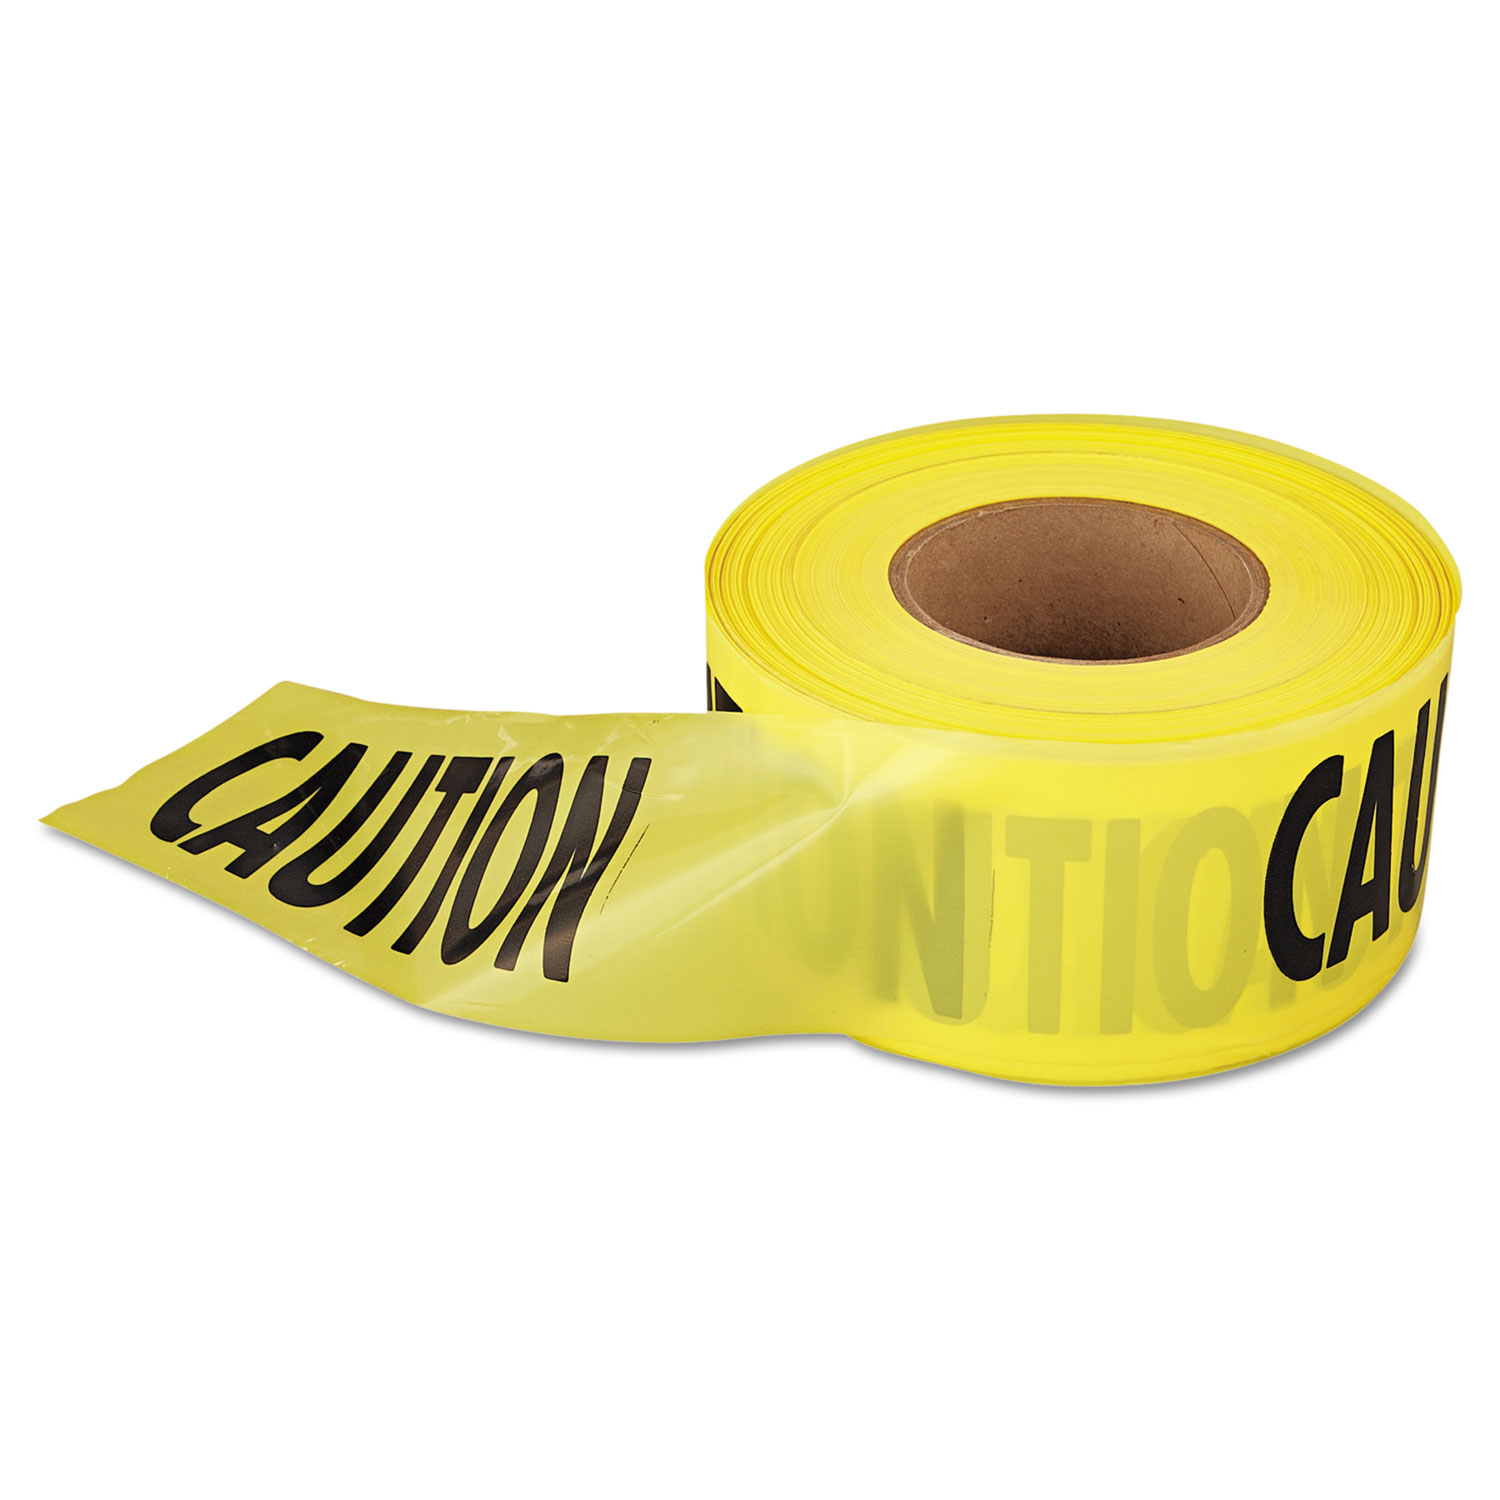 "Caution Barricade Tape, 3"" x 1,000 ft., Yellow/Black"